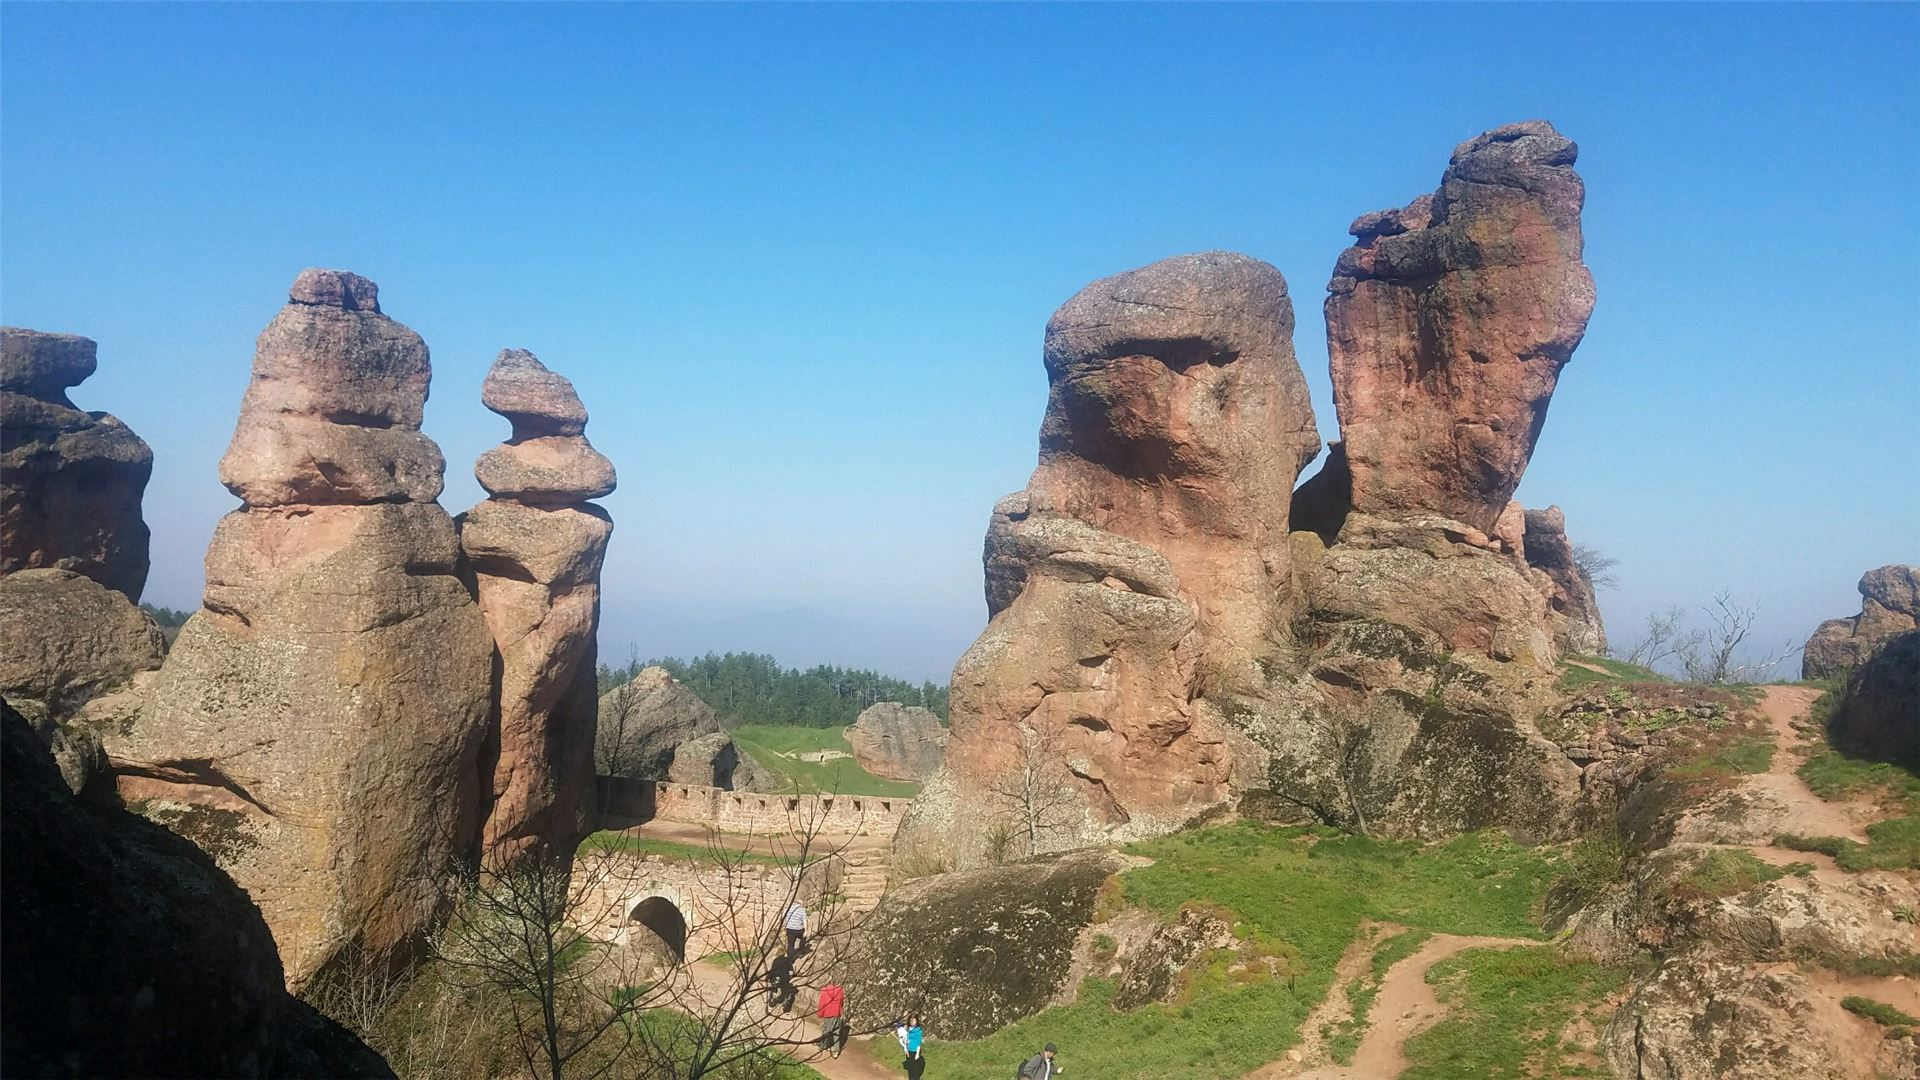 Bulgaria's Red Rock Country is another scenic excursion offered by Uniworld on the this itinerary